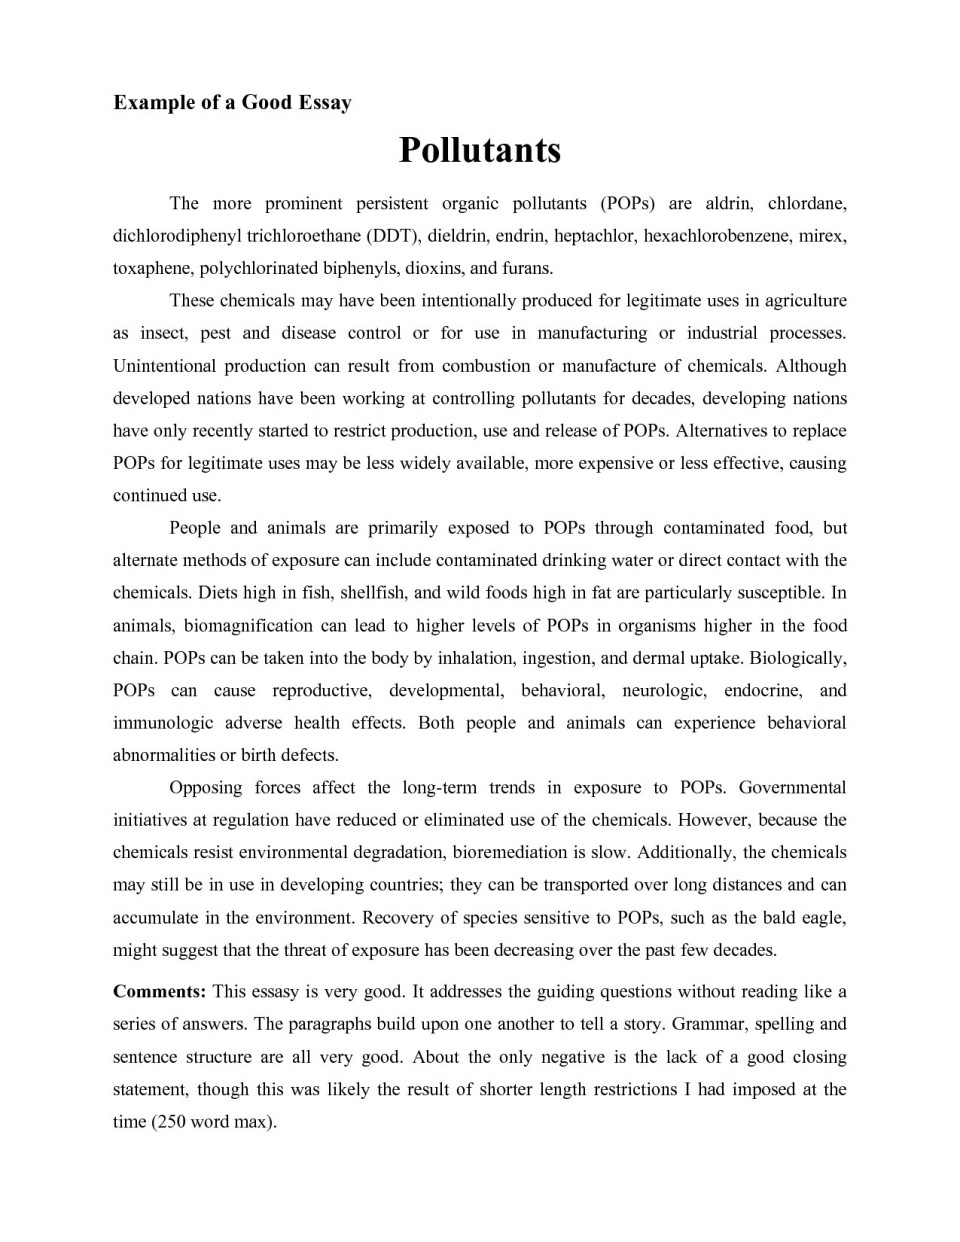 Opinion essay about environmental problems